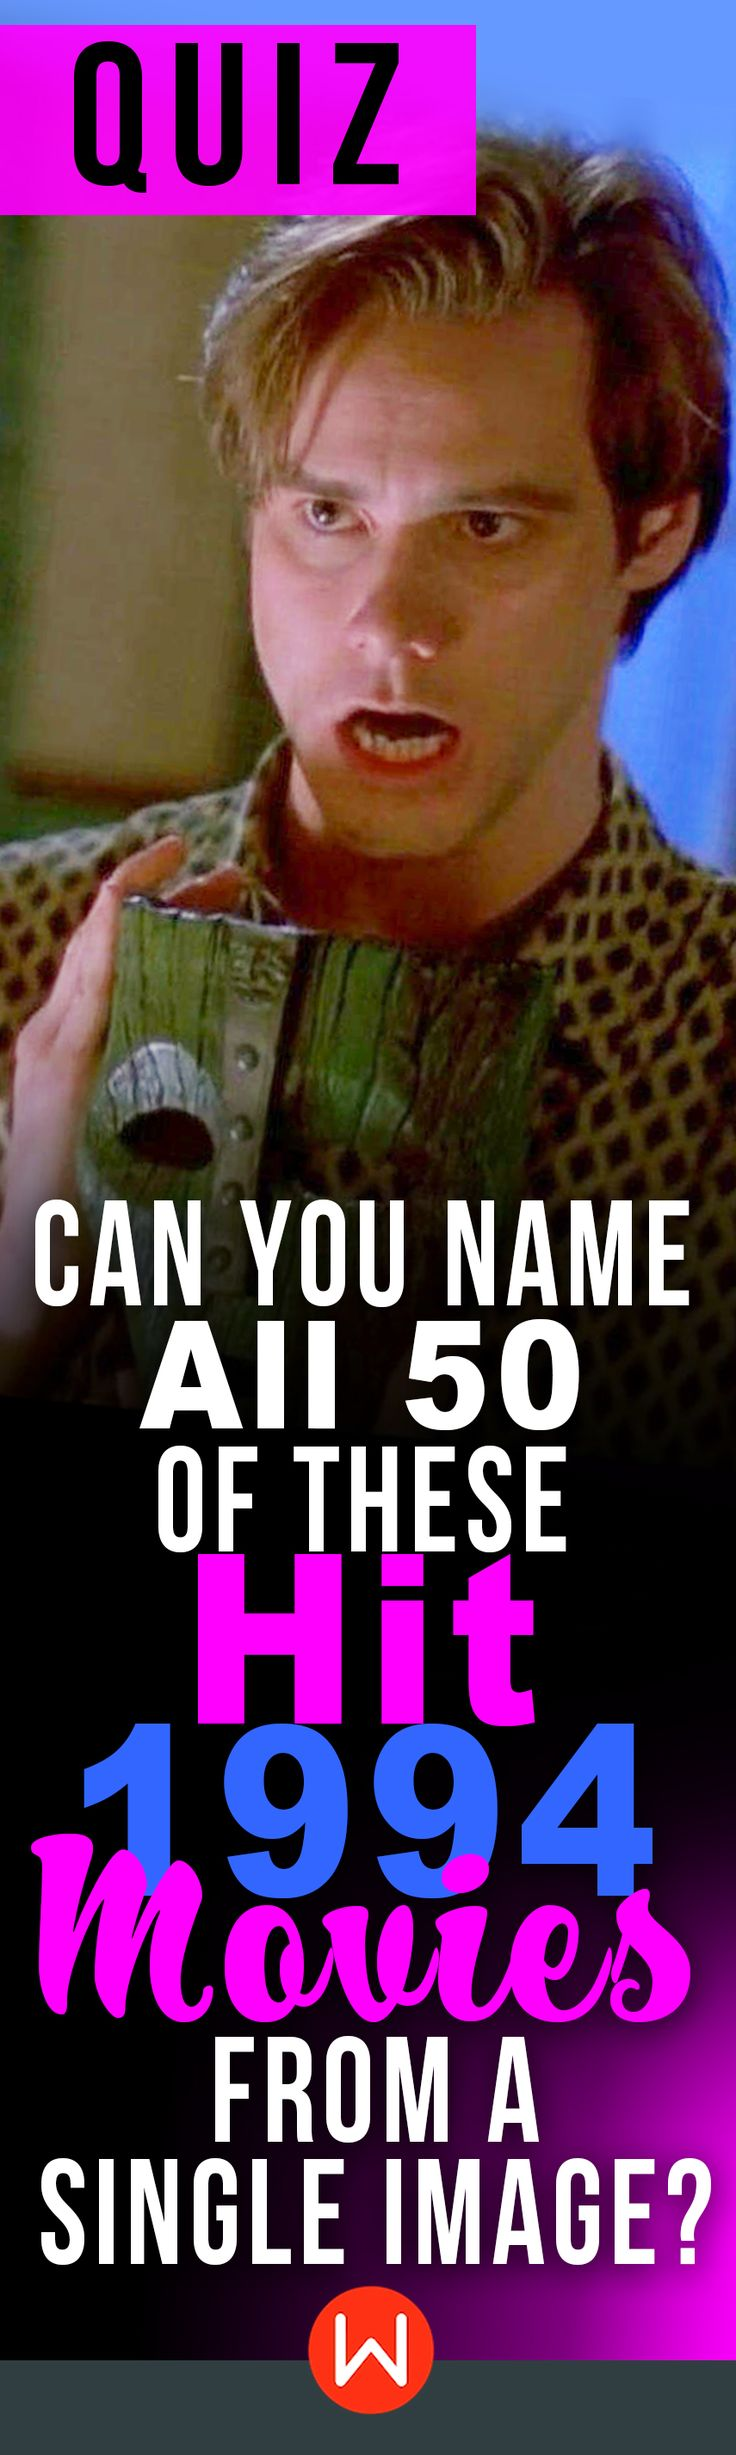 From Forrest Gump and Pulp Fiction to True Lies and #TheMask, do you know them all? #1994 Can you ace this Movie #quiz about the 50 top Movies from 1994? #90s Trivia test, 90s pop culture quiz. Fun quiz #JimCarrey